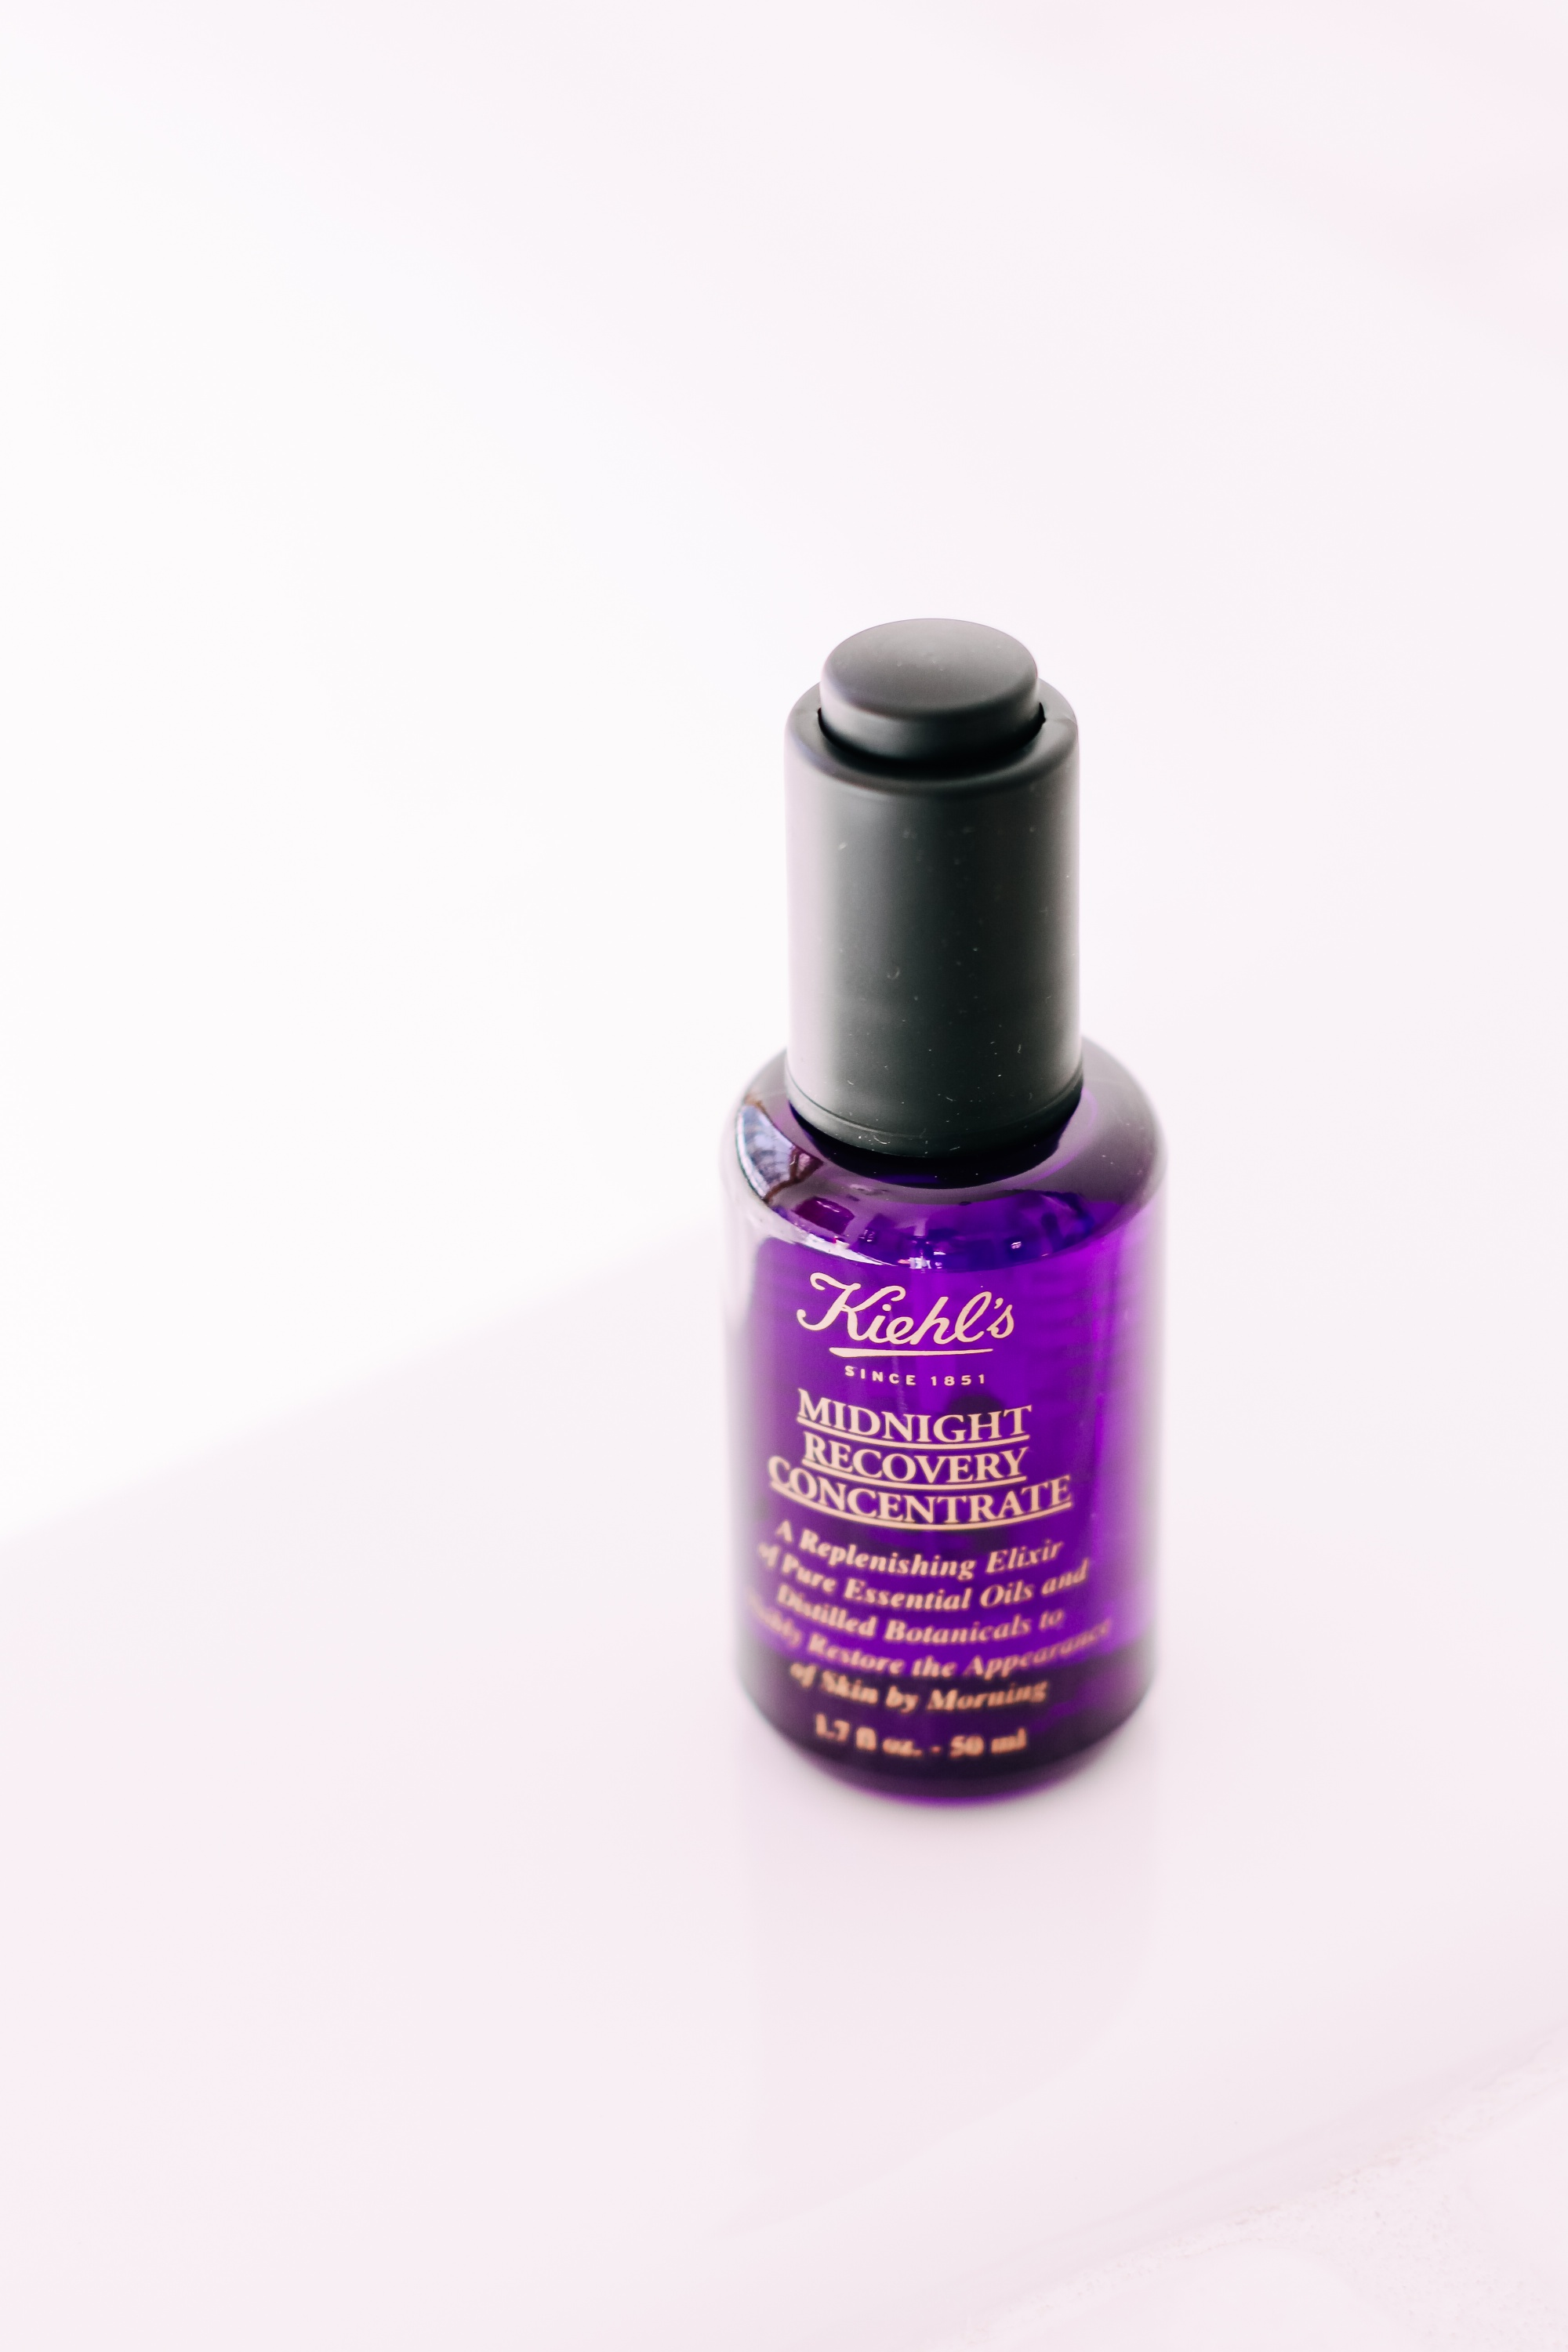 Skincare Gifts, Erin Busbee of Busbee Style using the Midnight Recovery Concentrate Face Oil by Kiehl' in Telluride, Colorado